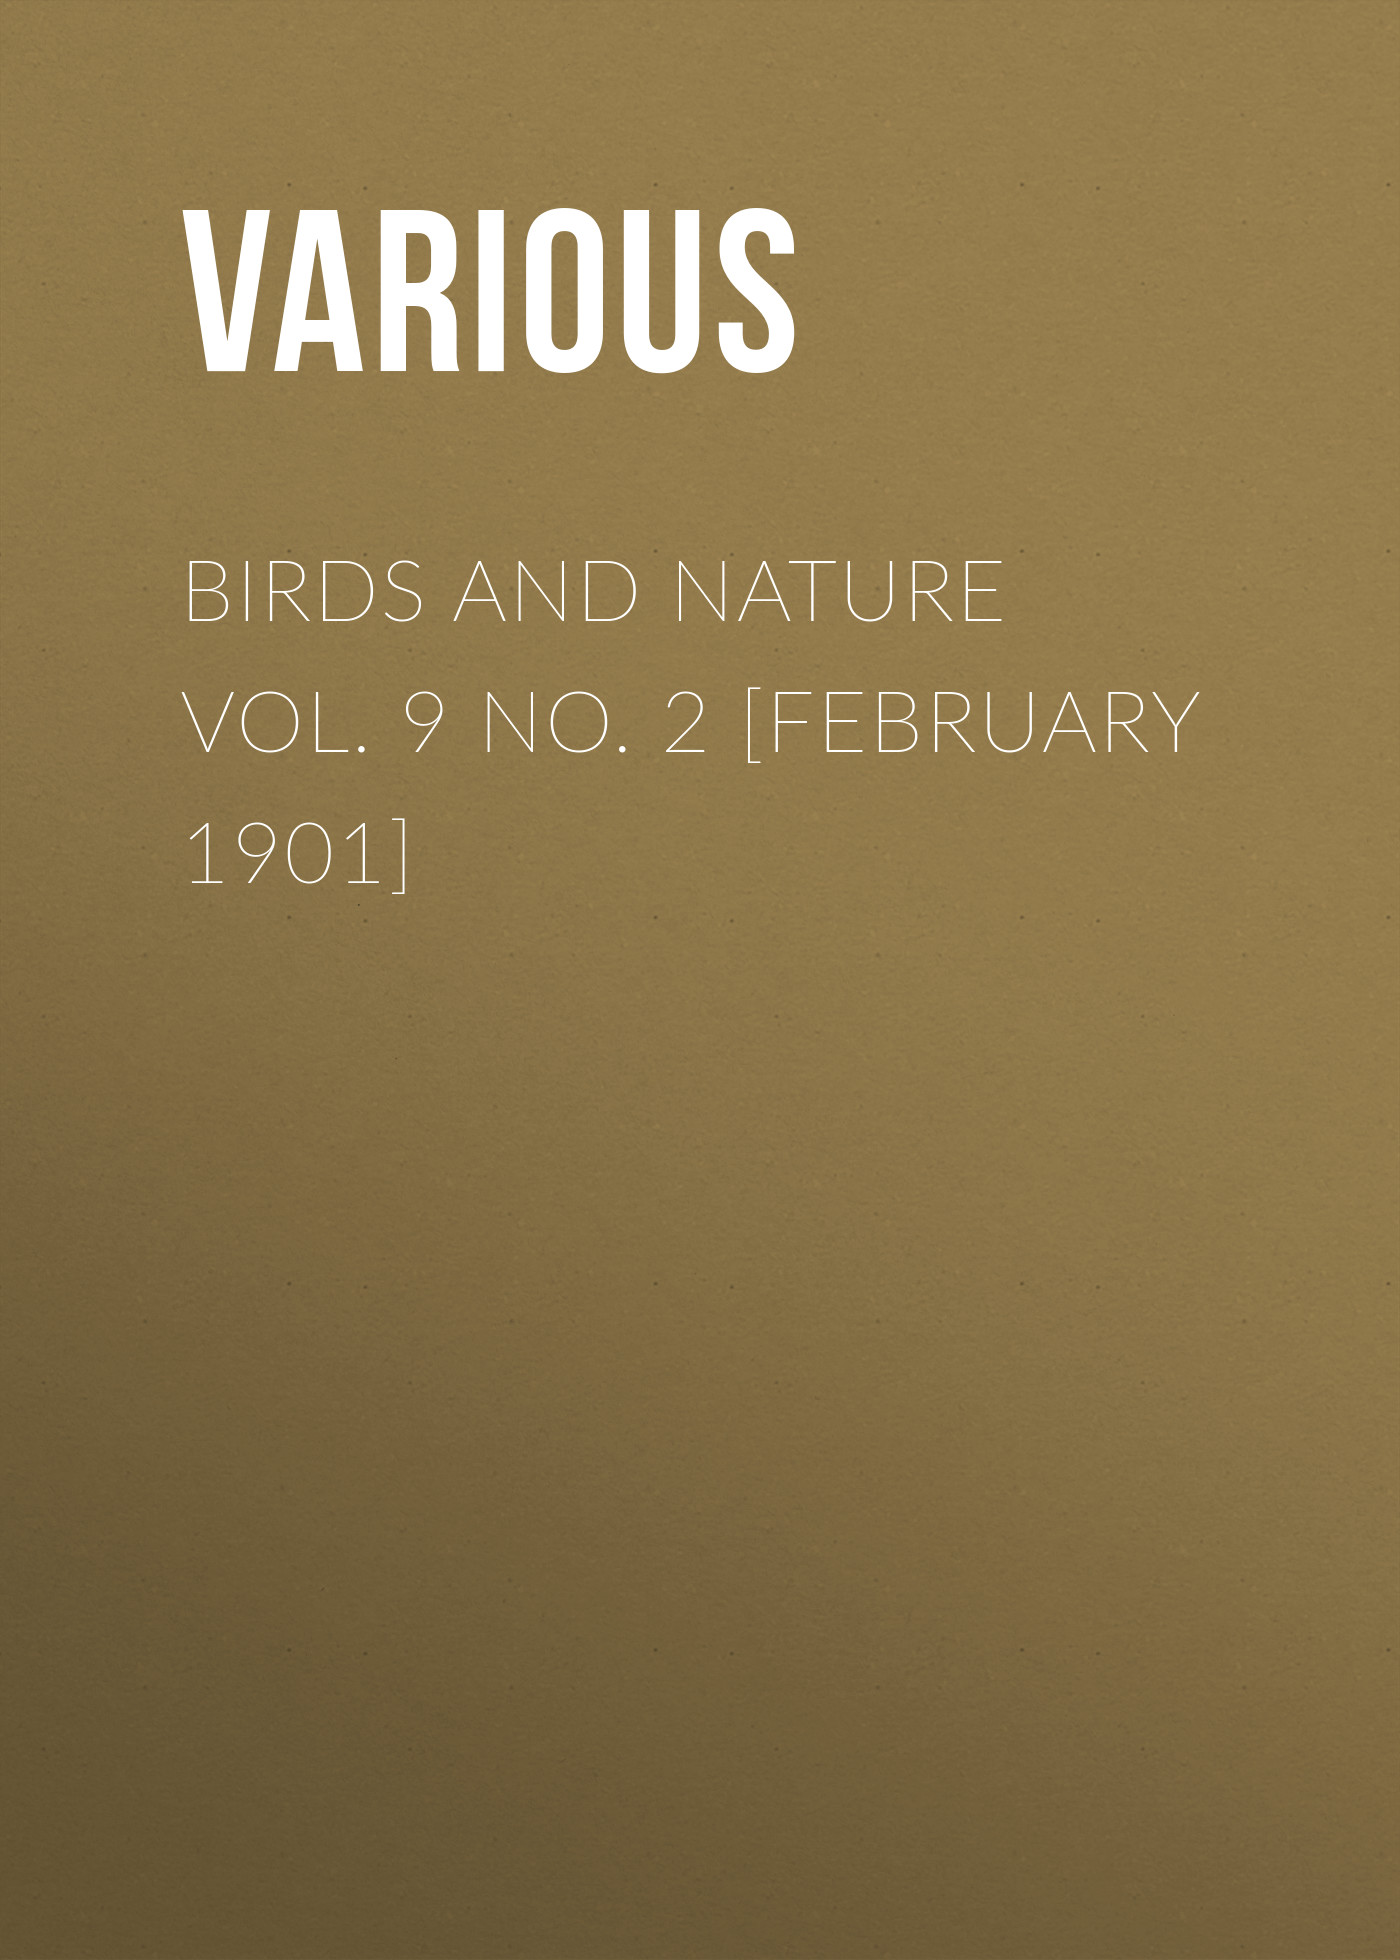 цена Various Birds and Nature Vol. 9 No. 2 [February 1901] онлайн в 2017 году